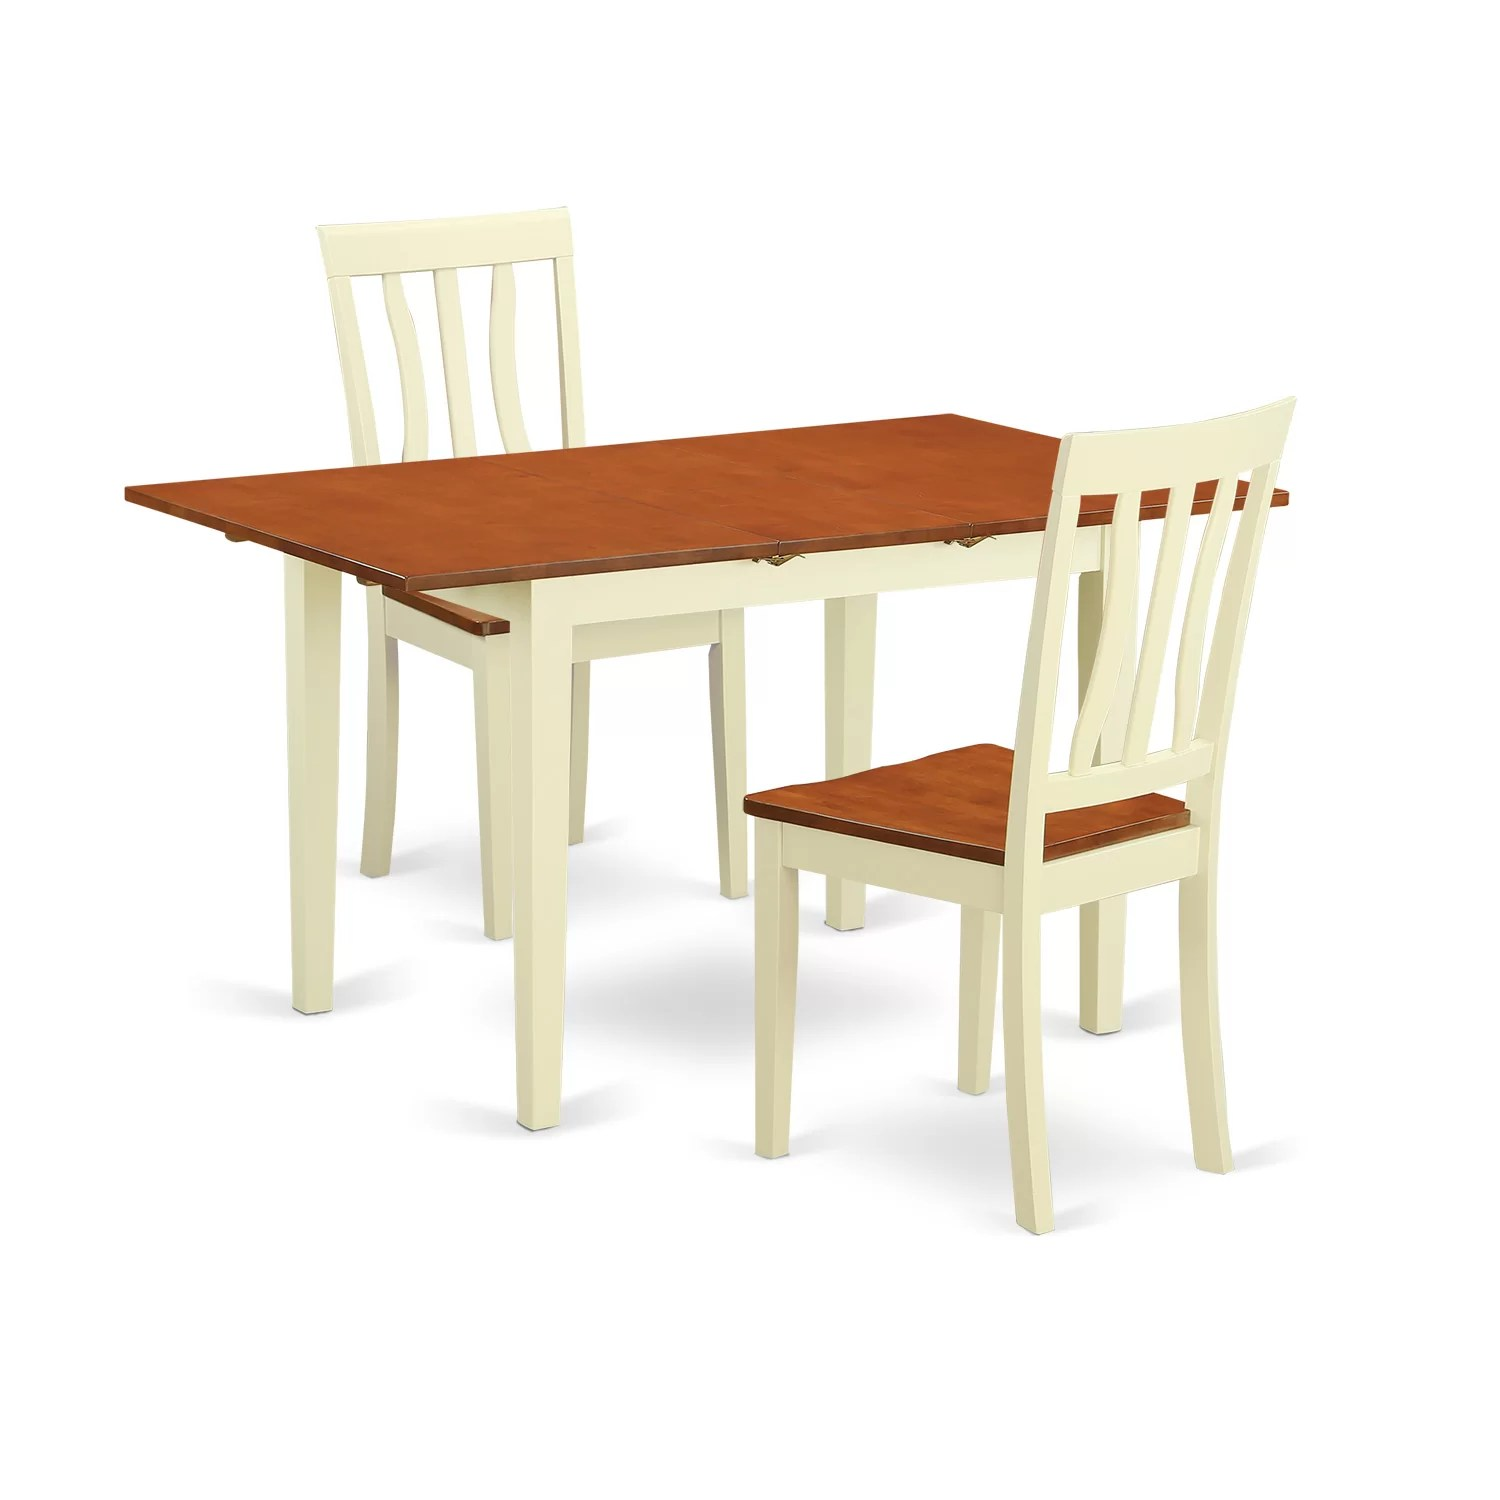 Table With Two Chairs Wooden Importers 3 Piece Dining Set And Reviews Wayfair